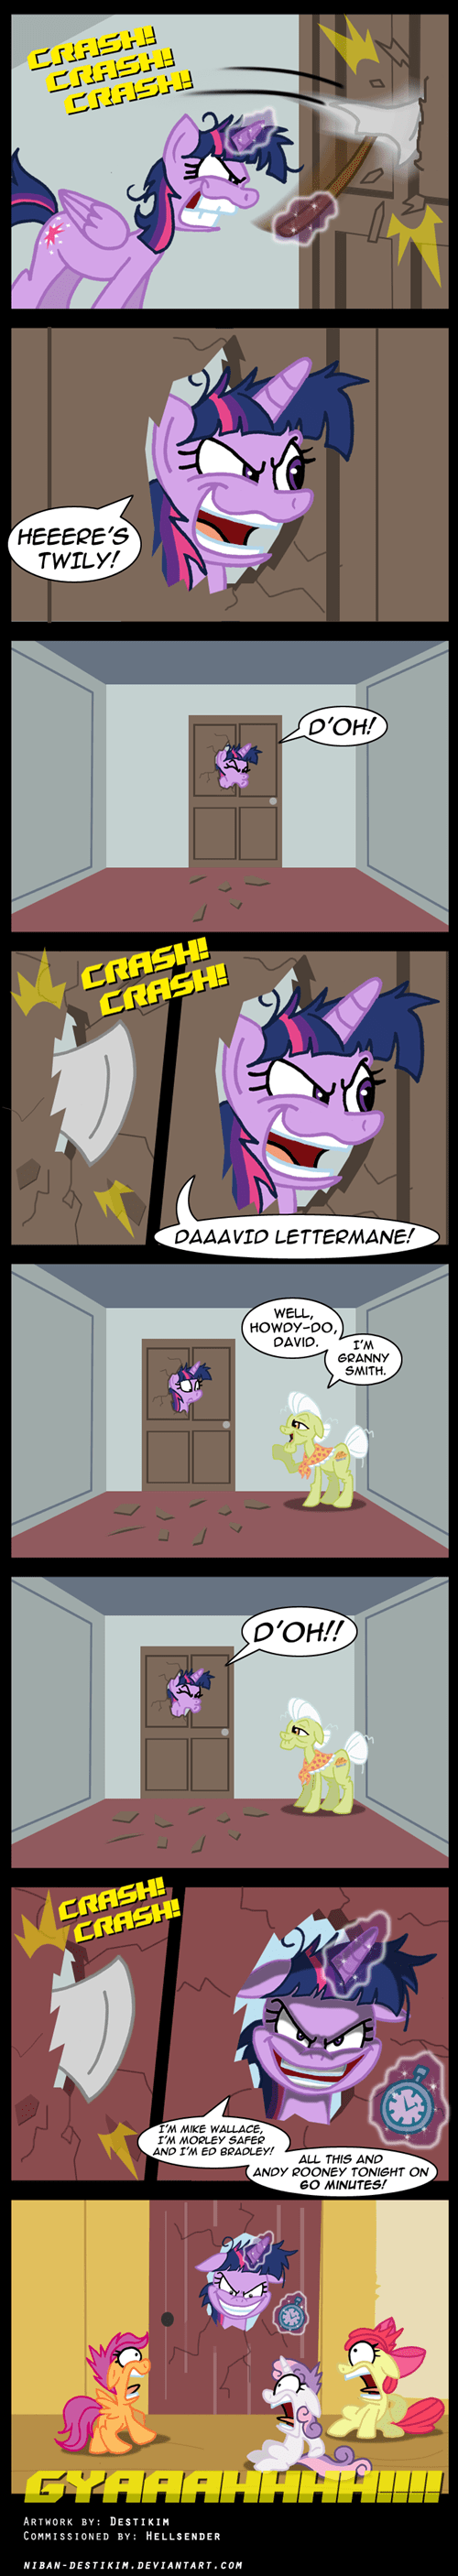 the shining the simpsons twilight sparkle - 8365788672